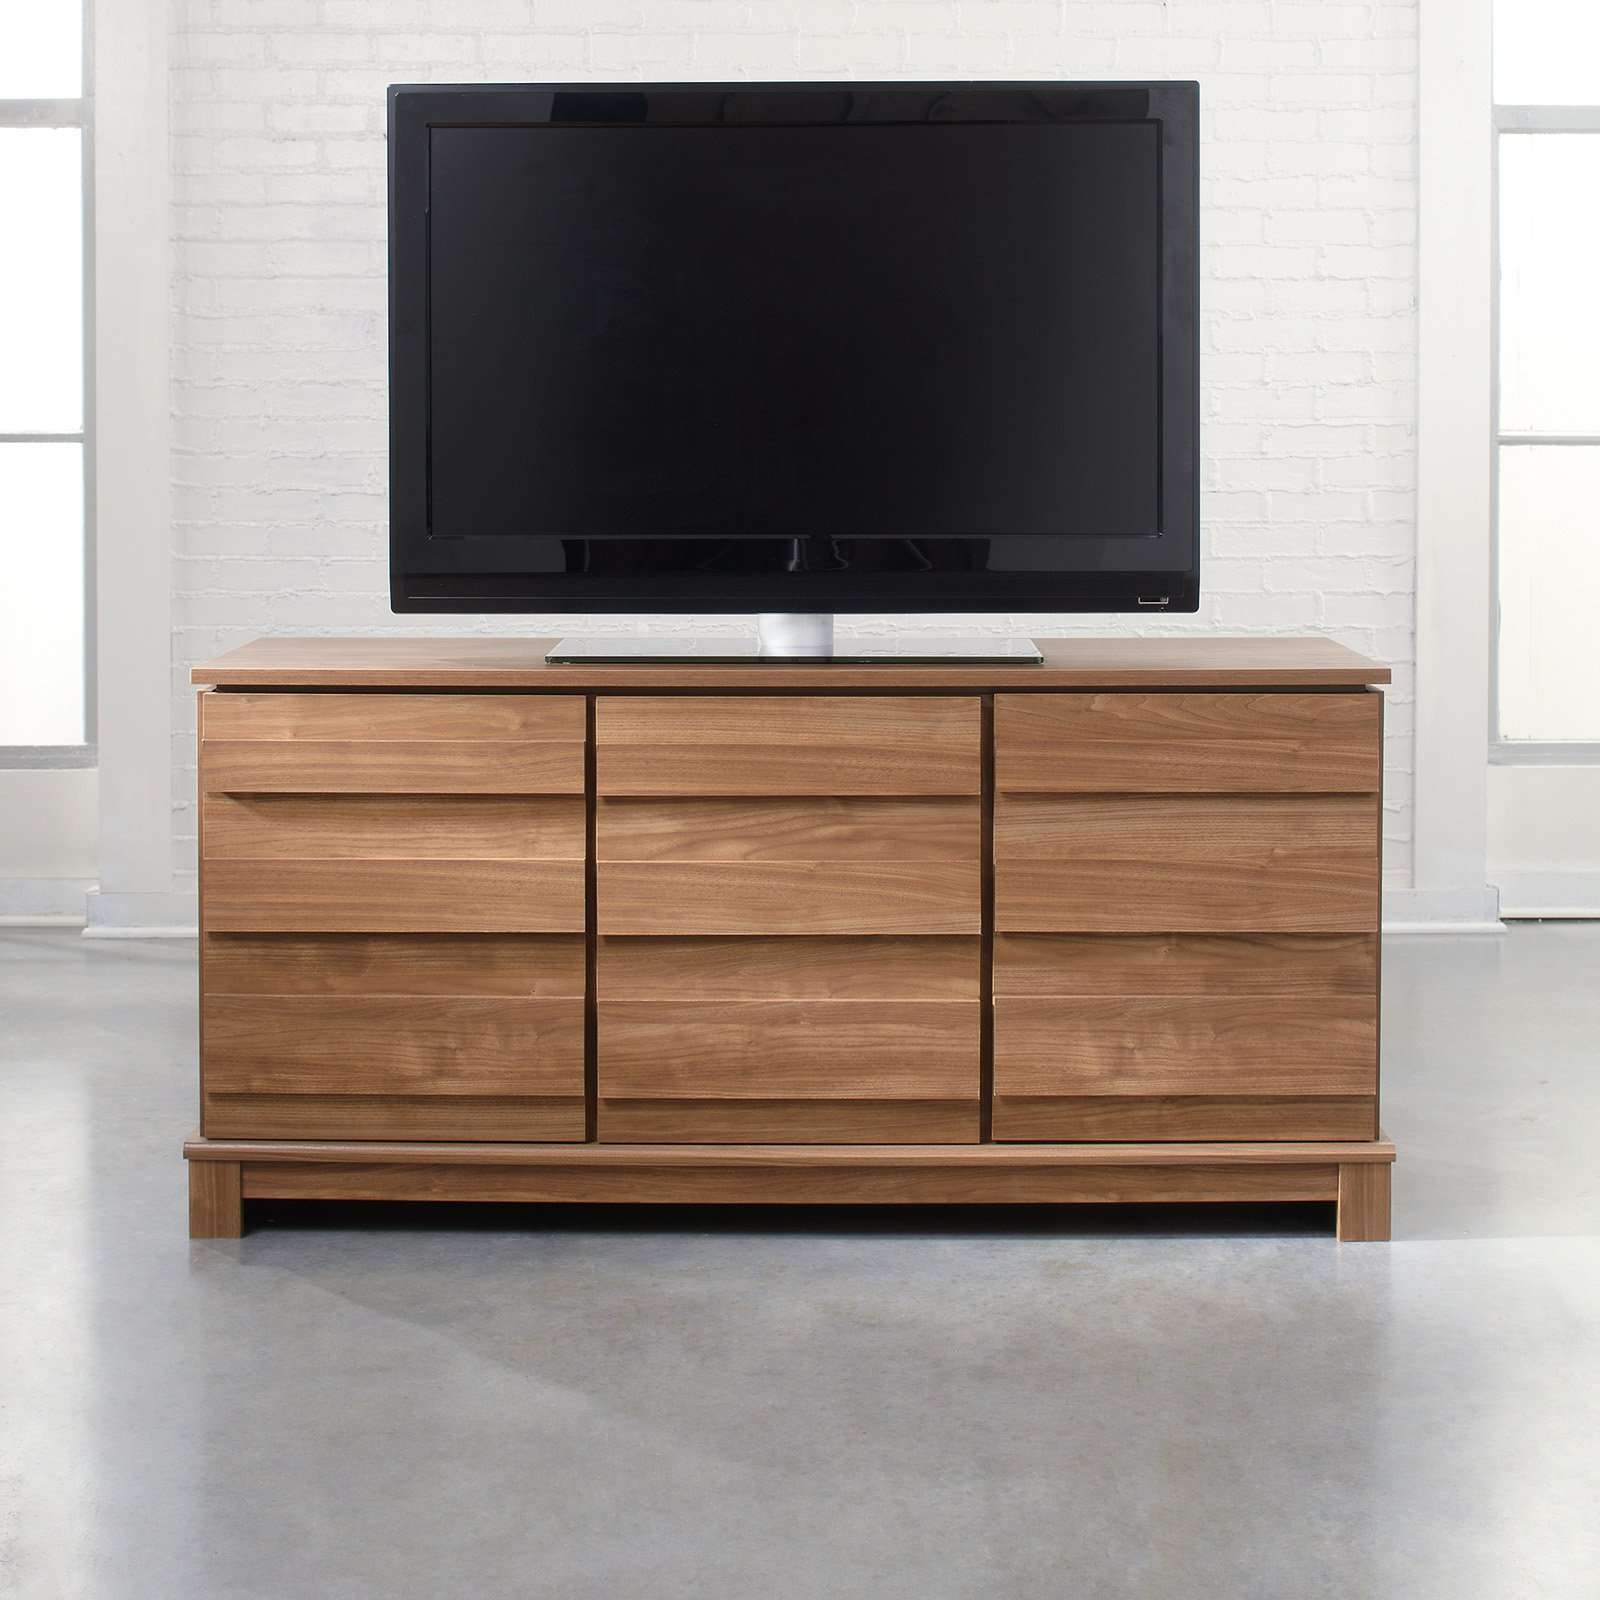 Tv : Oak Effect Corner Tv Stands Trendy Madison Oak Effect Corner Throughout Oak Effect Corner Tv Stands (View 11 of 15)